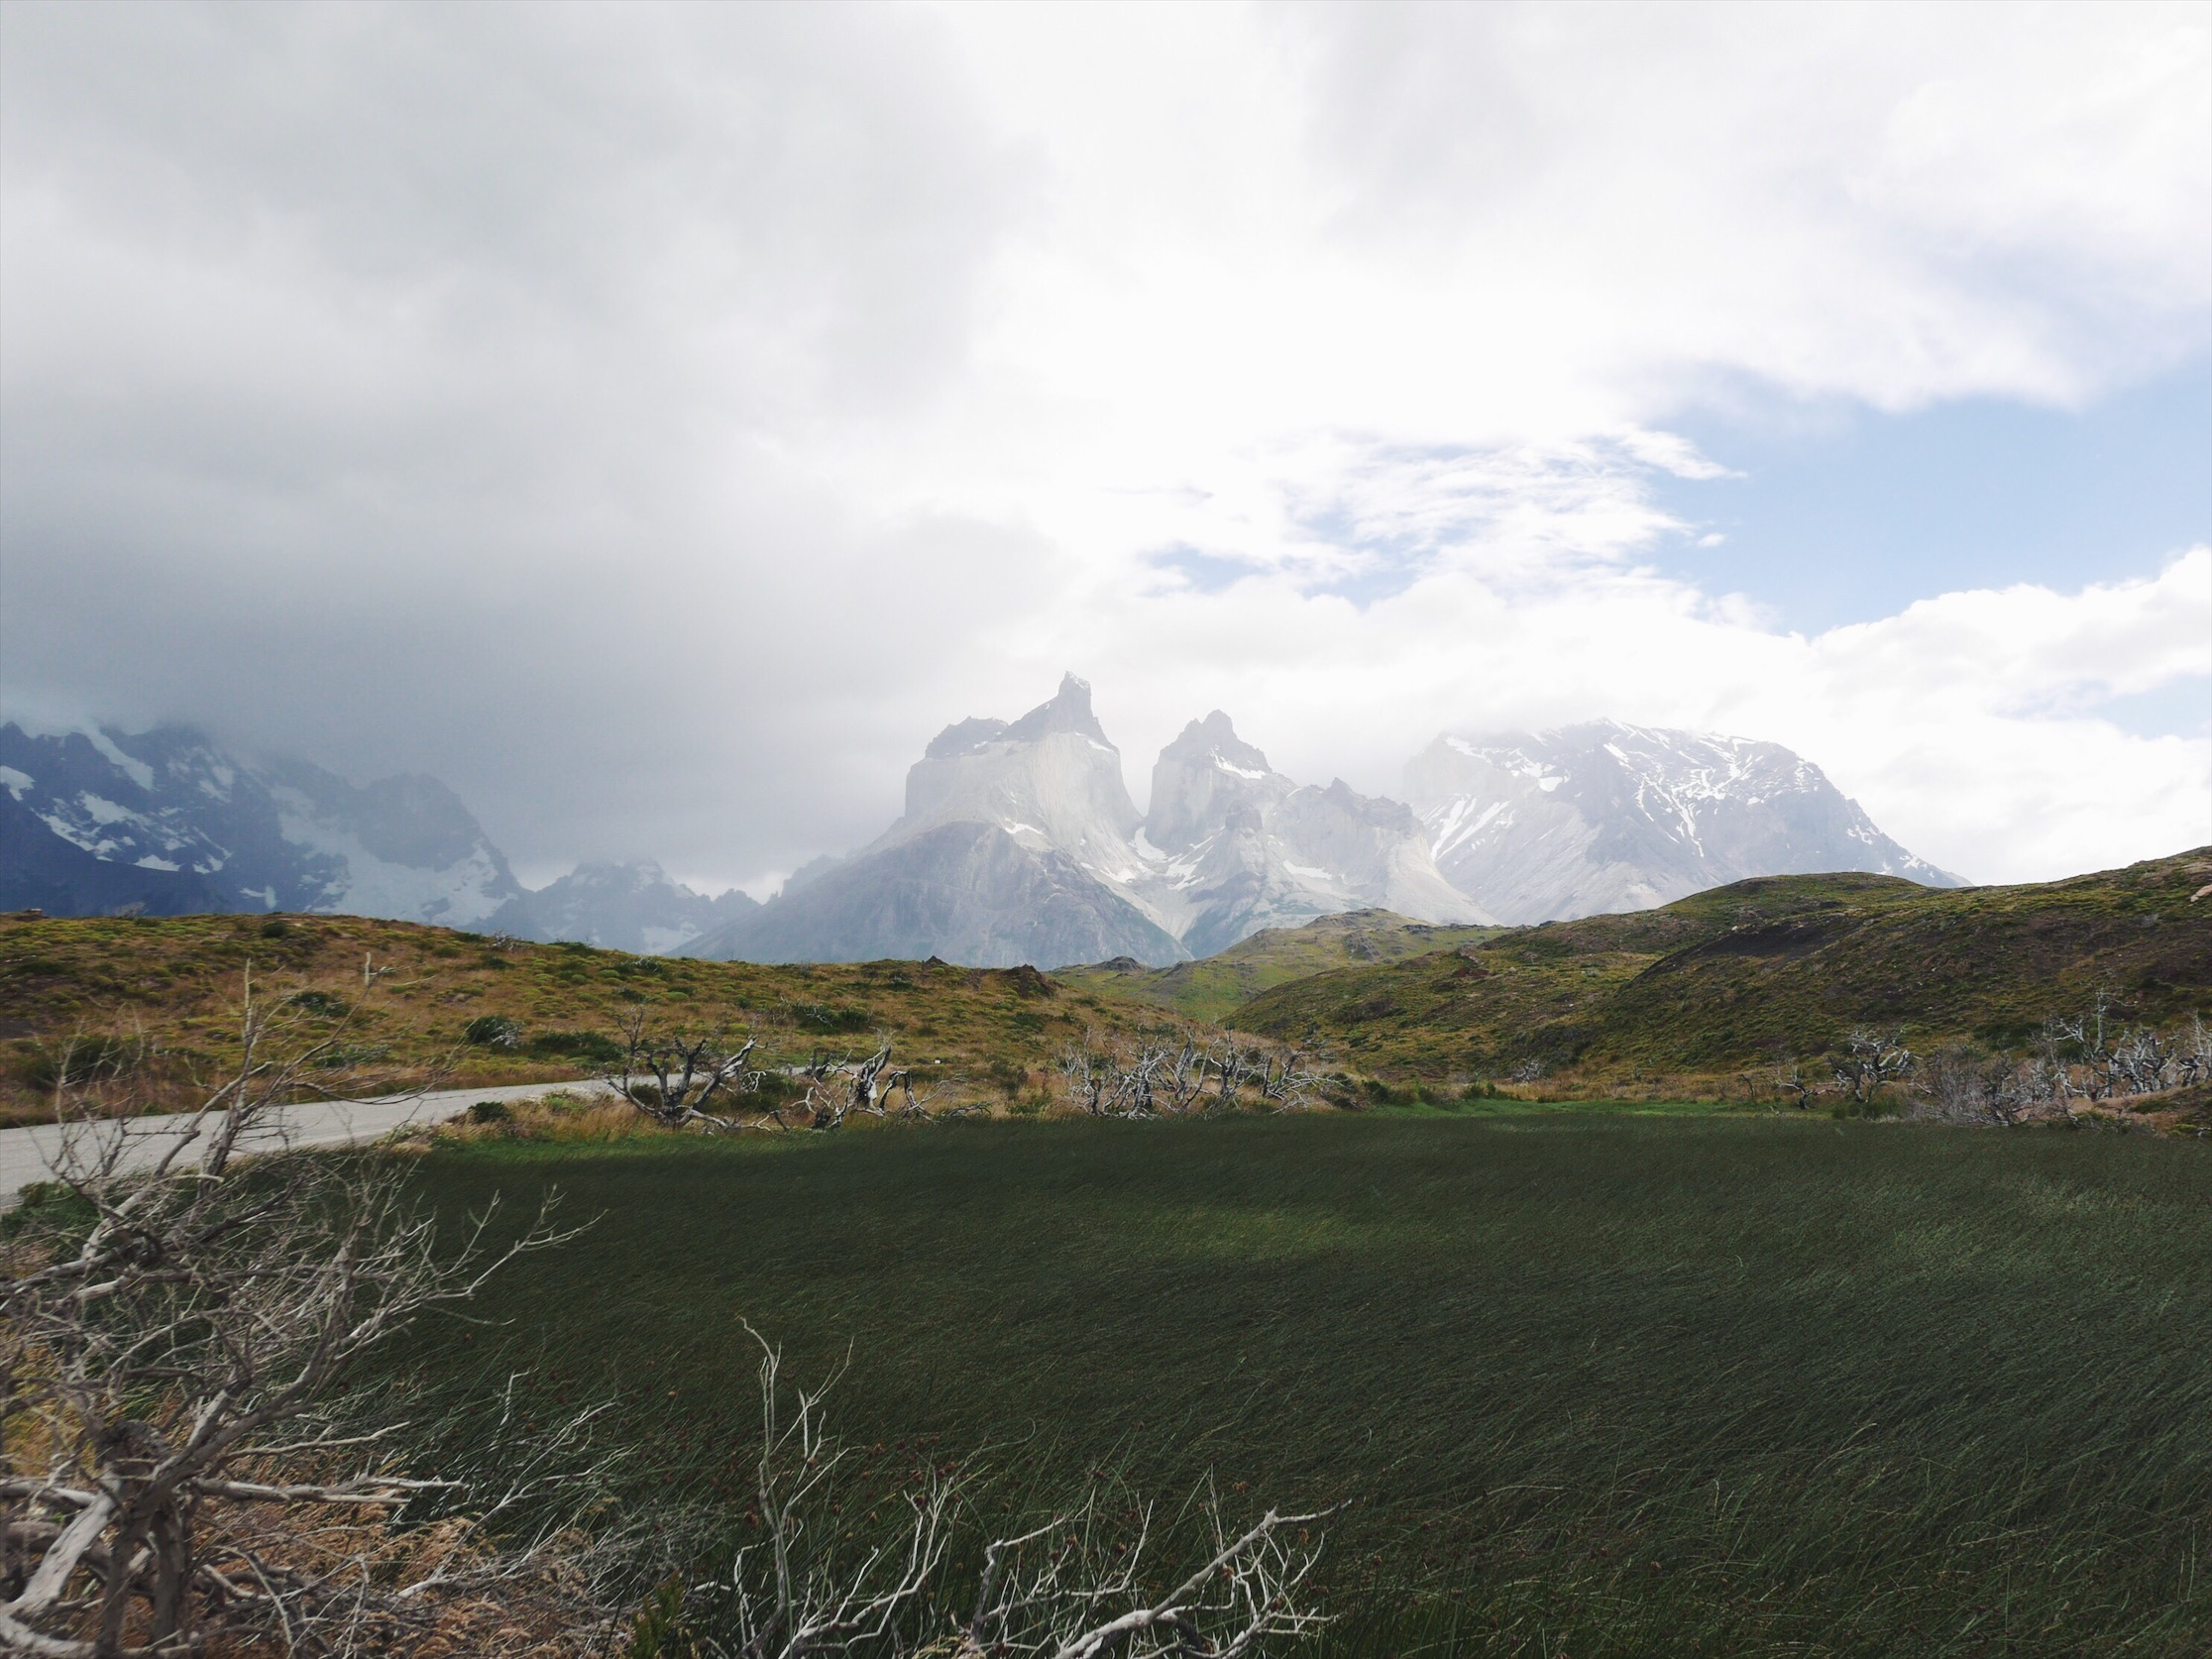 Cuernos Del Paine. Cuernos means horns.